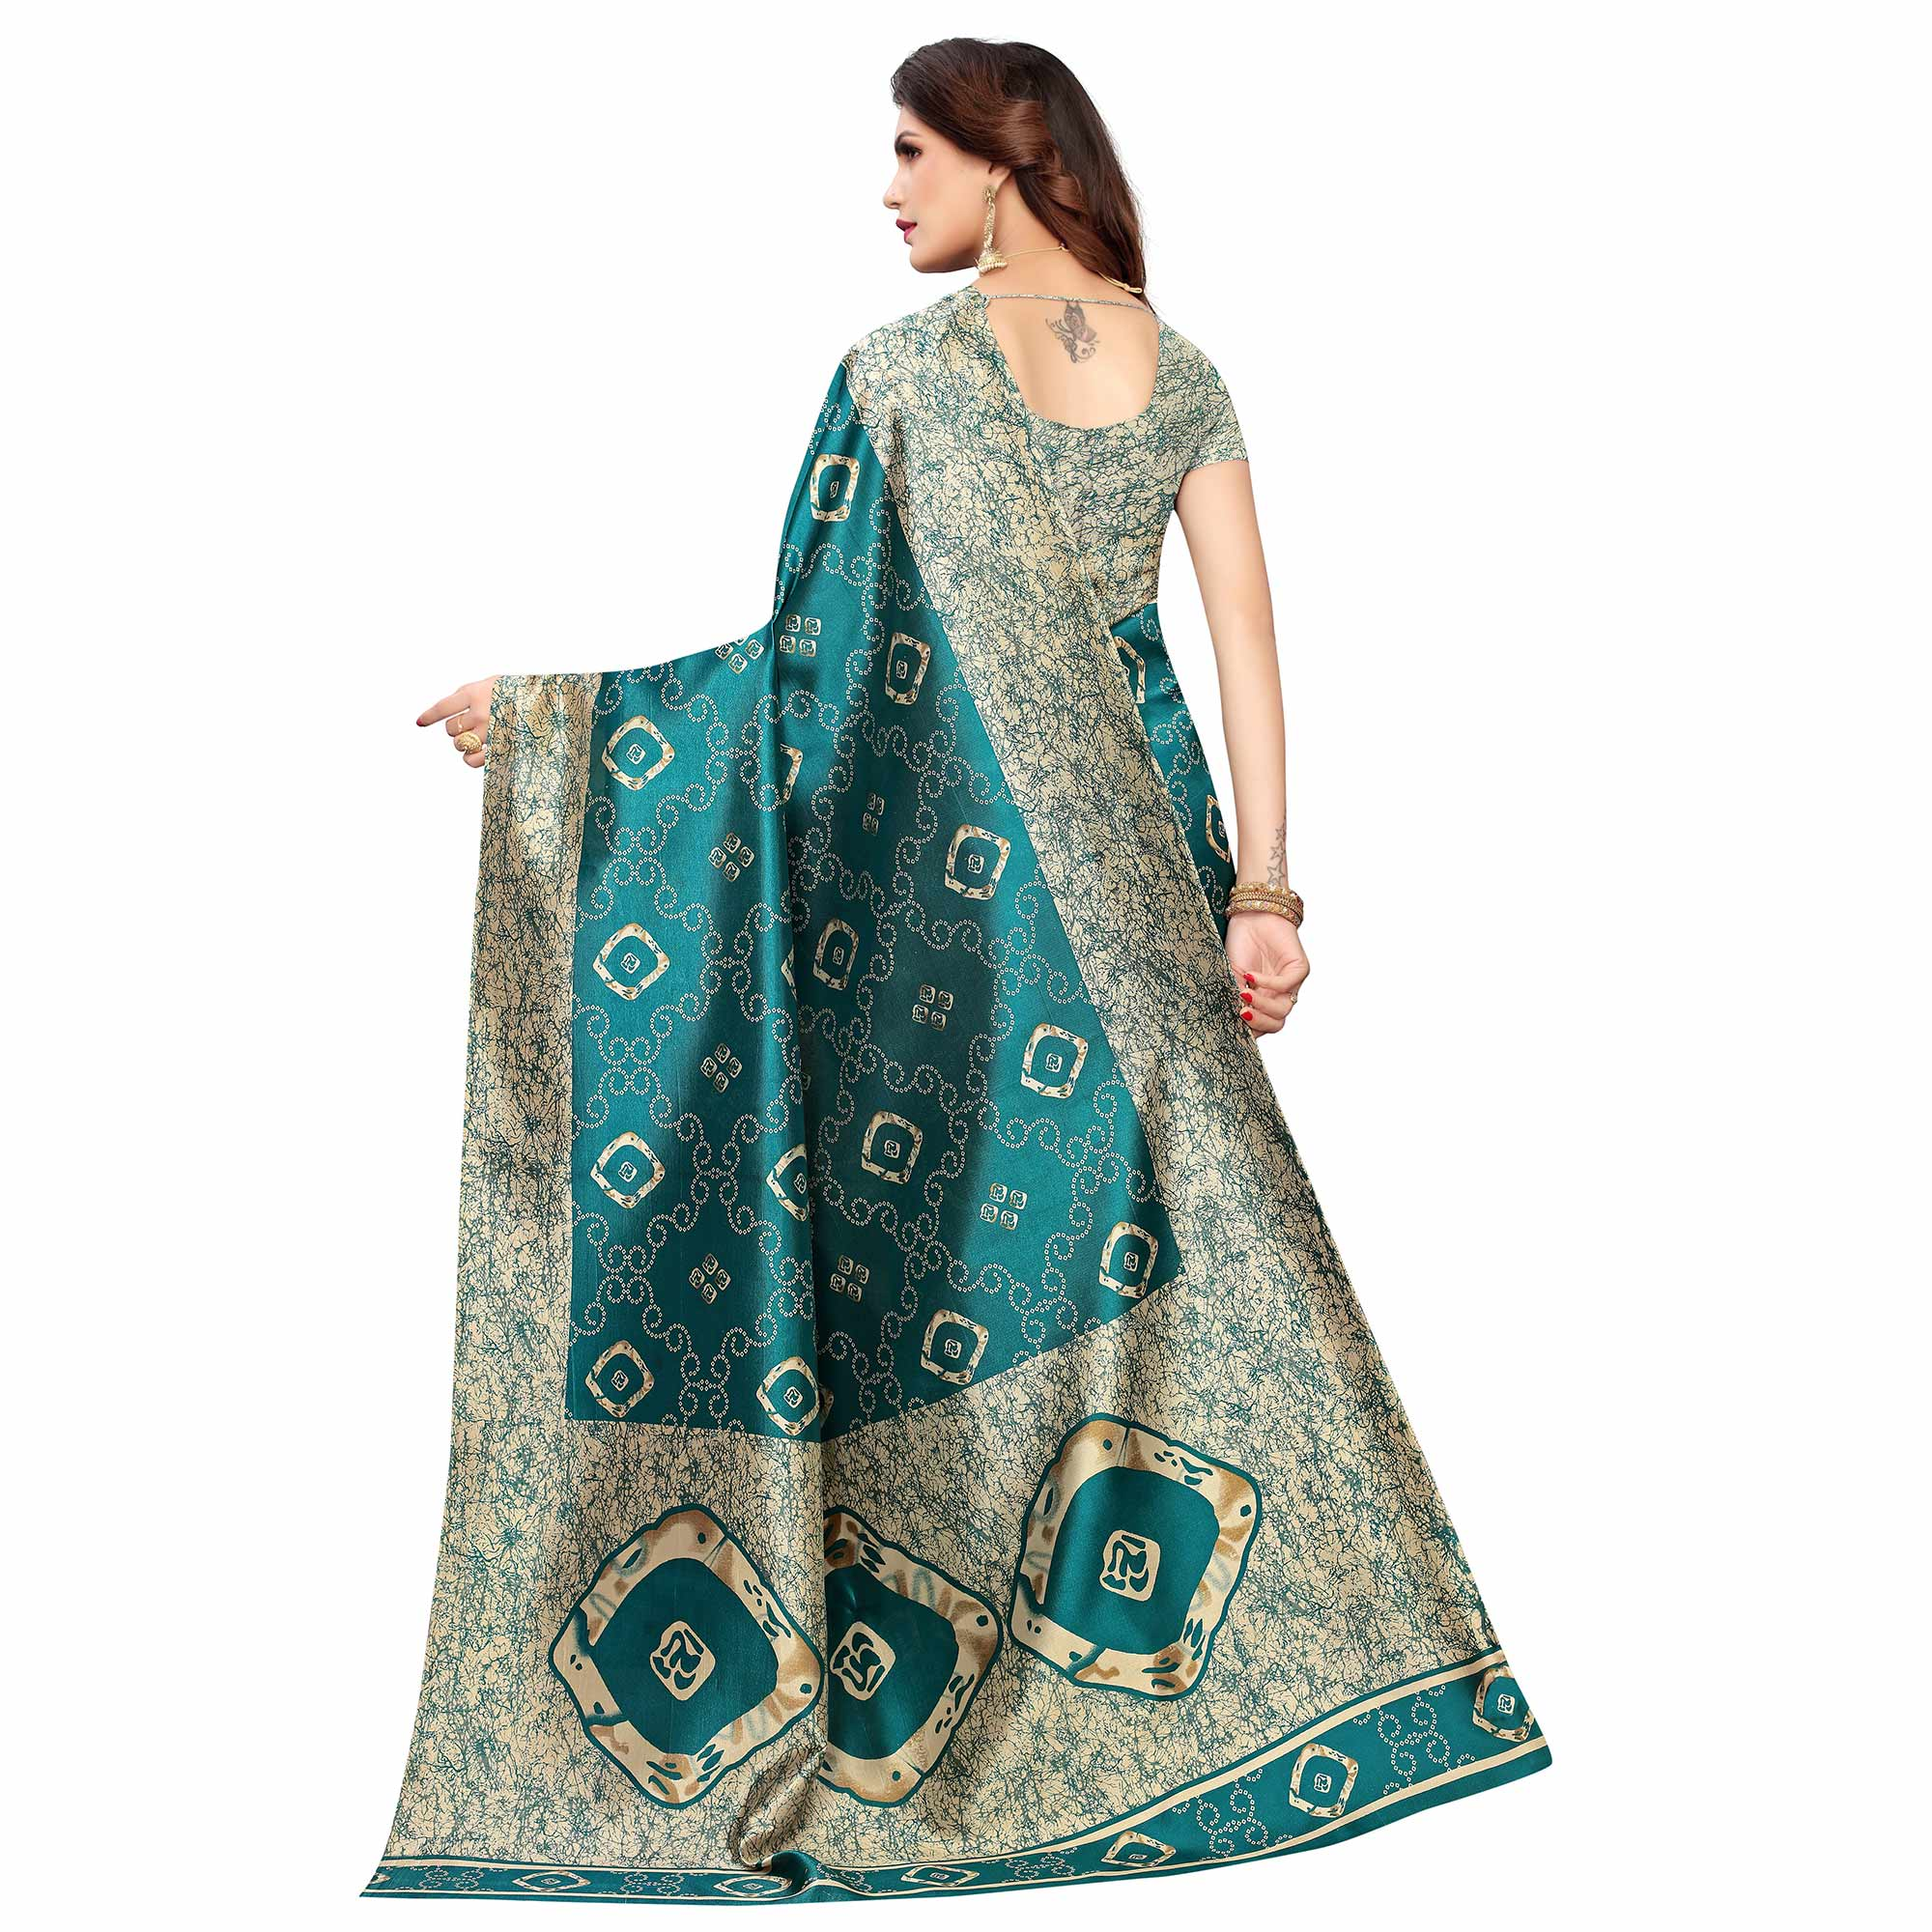 Lovely Turquoise Green Colored Casual Printed Art Silk Saree